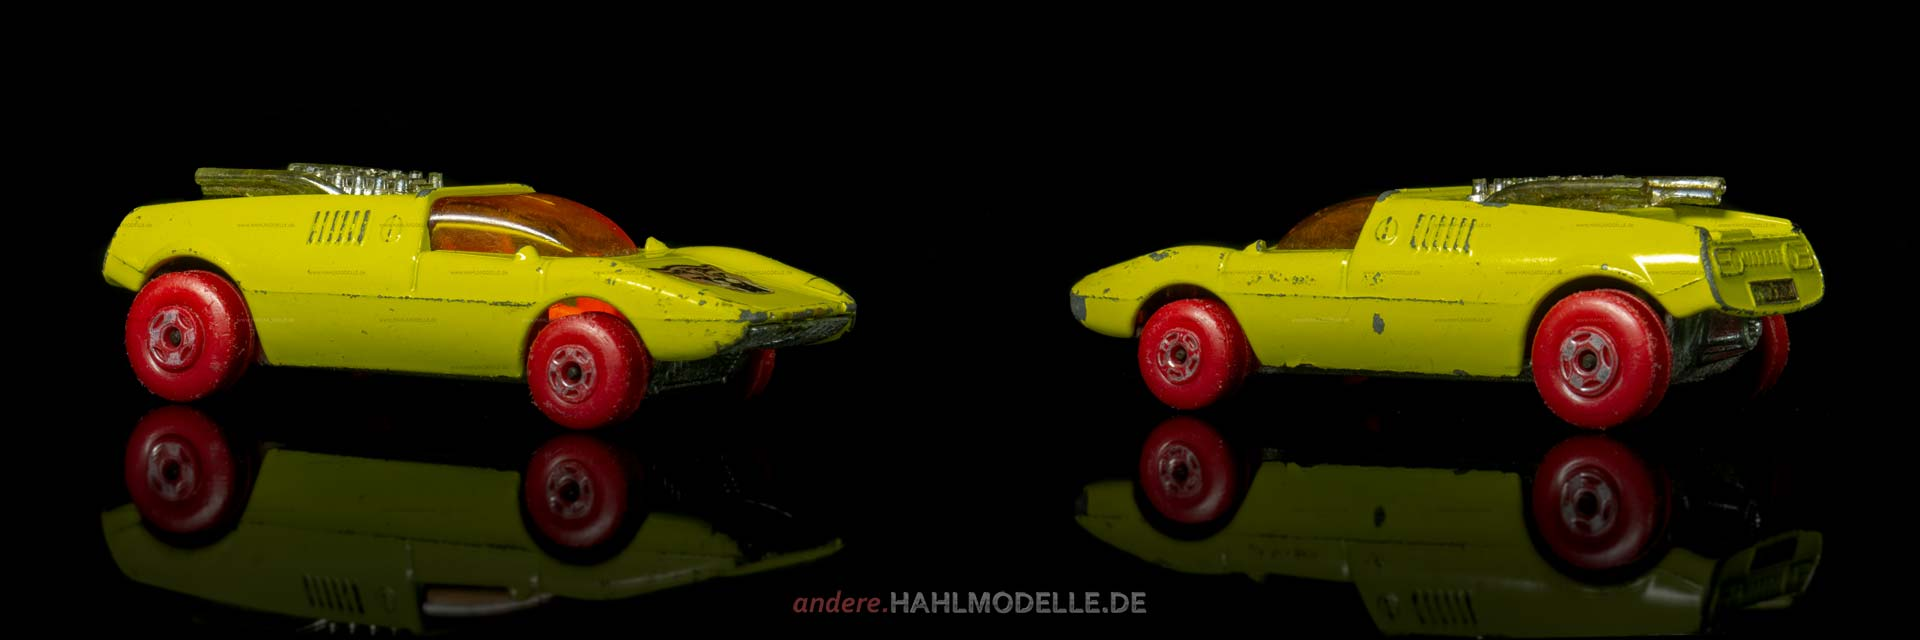 """Mod Rod"" 